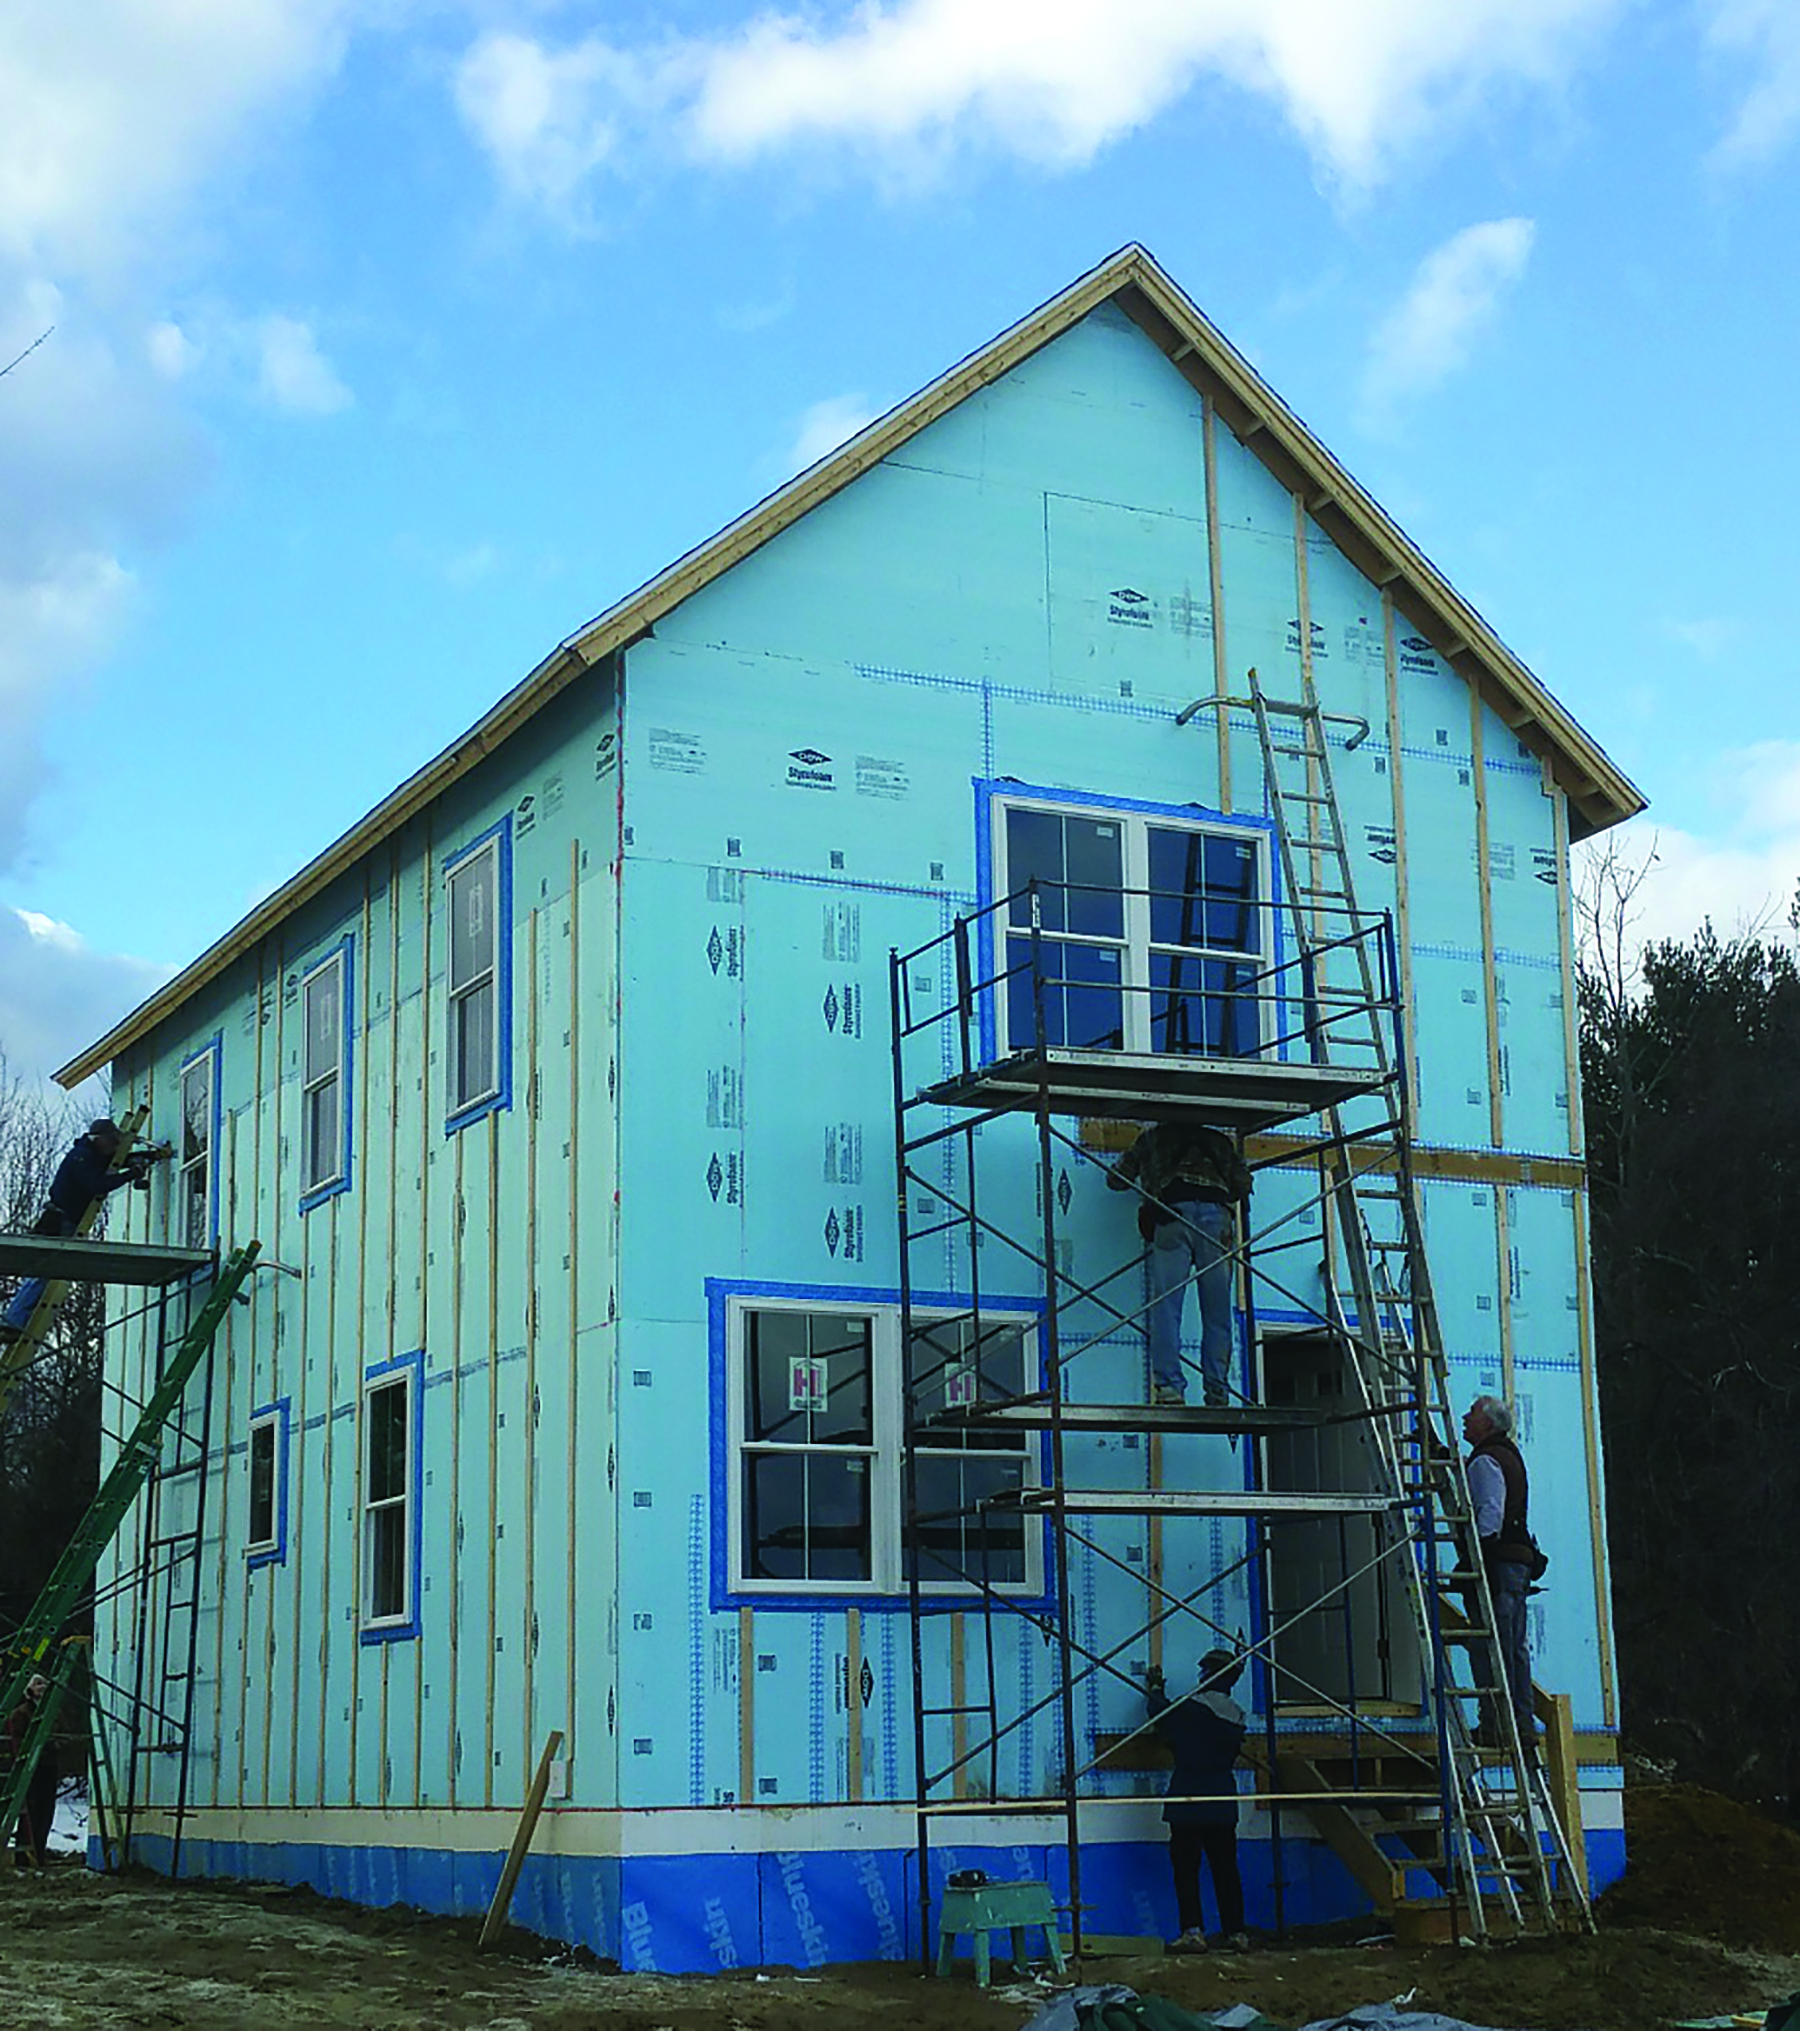 A Habitat for Humanity development in Scarborough uses new construction methods that meet EnergyStar standards, ensuring that the homes are 75% more efficient than an average house. Photo: Tim King